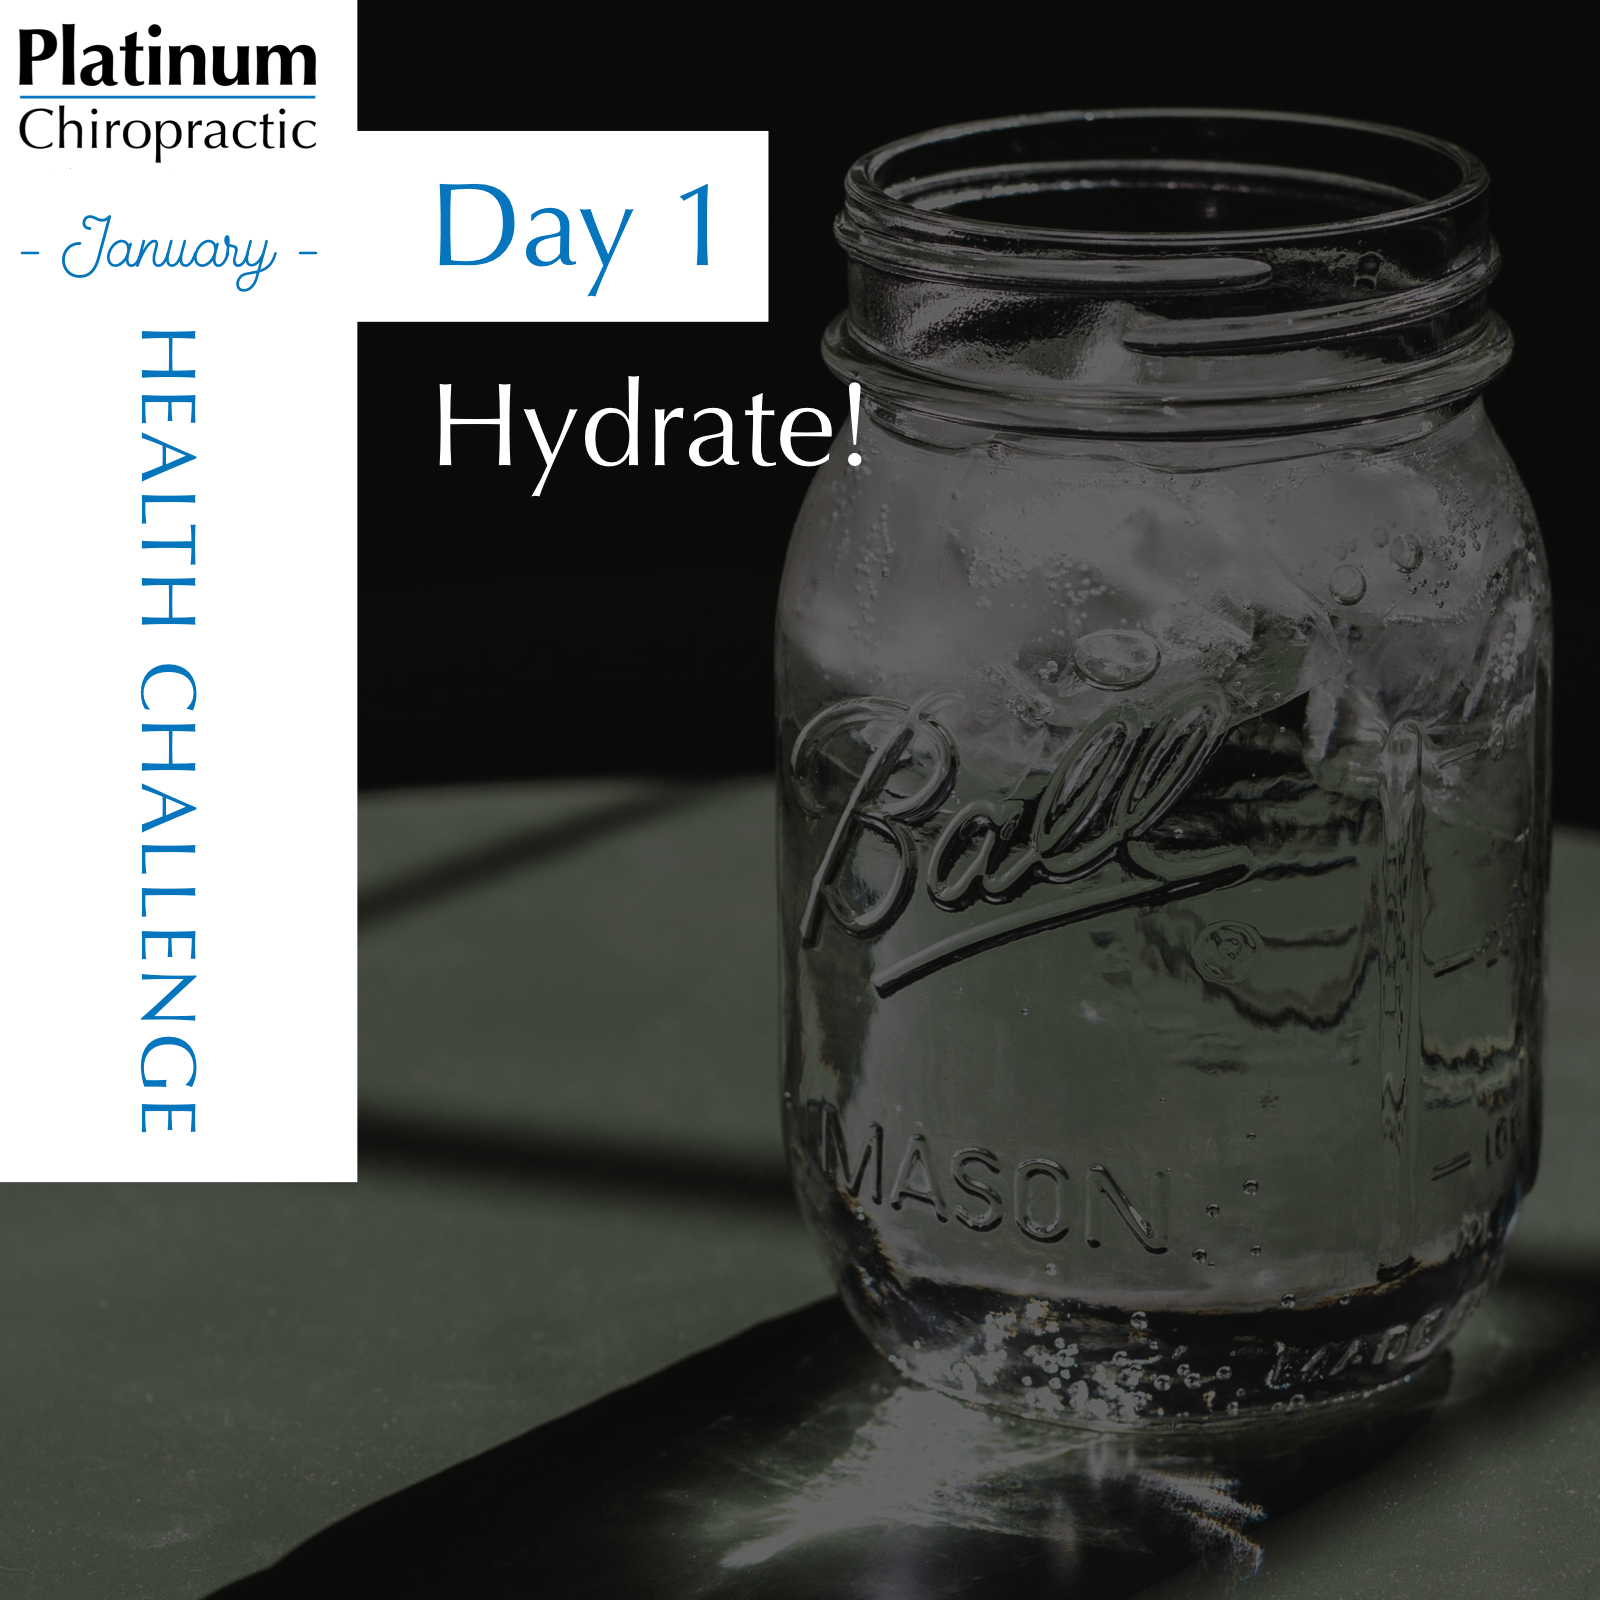 Platinum Chiropractic, Santa Clara CA,Day 1 challenge. Each day you should get half your body weight in ounces of water.